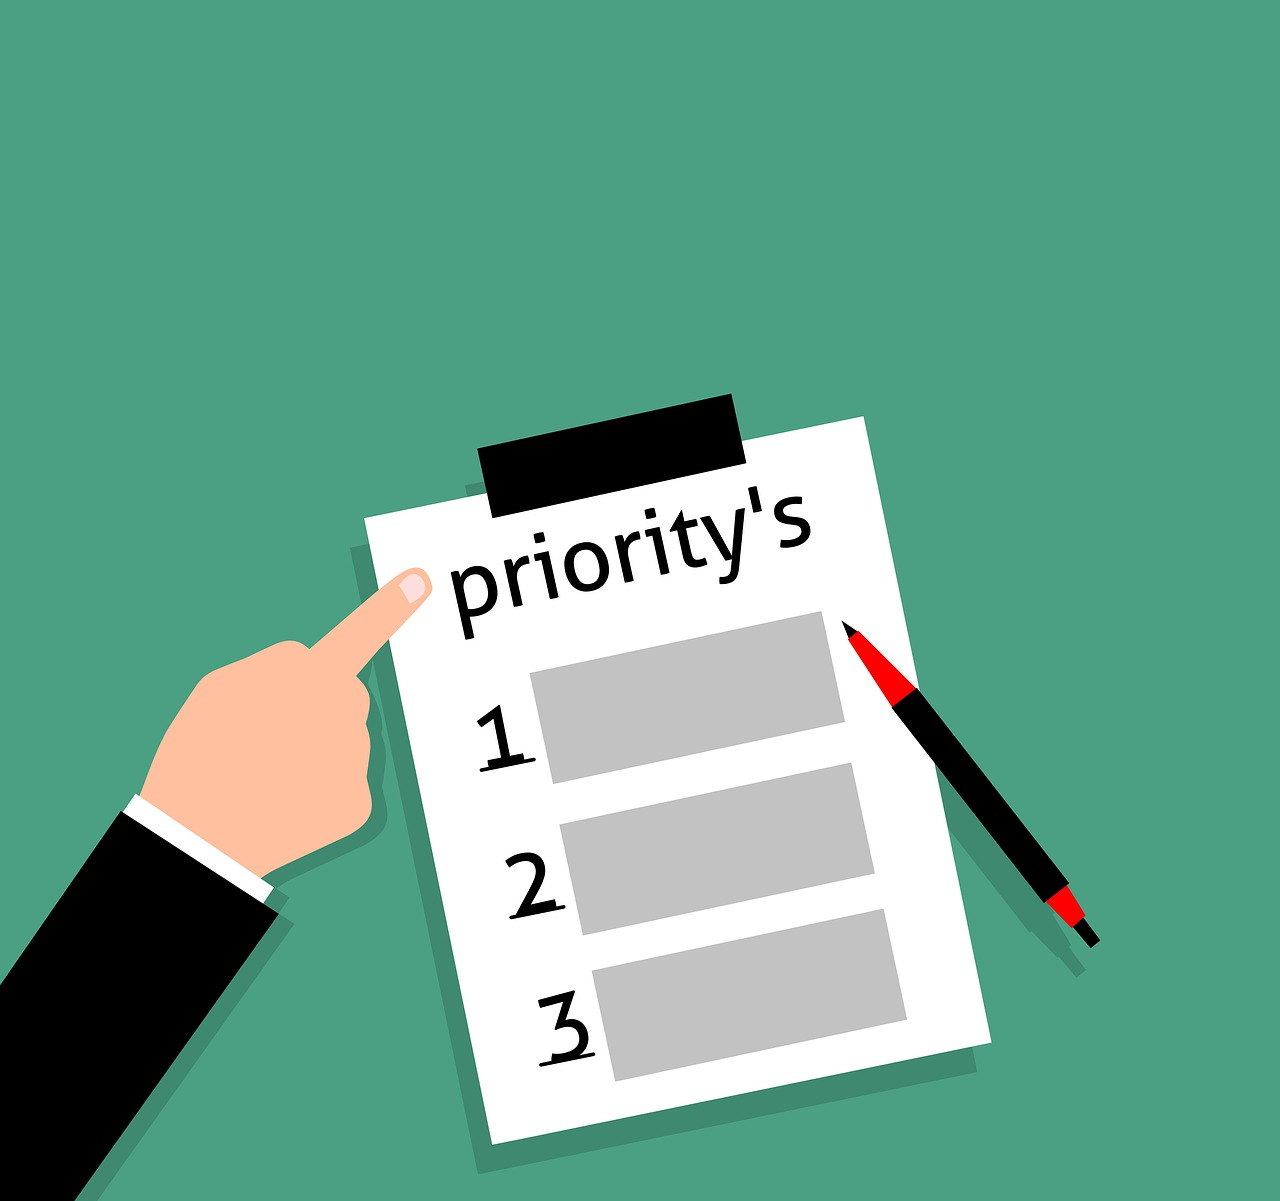 A priority list